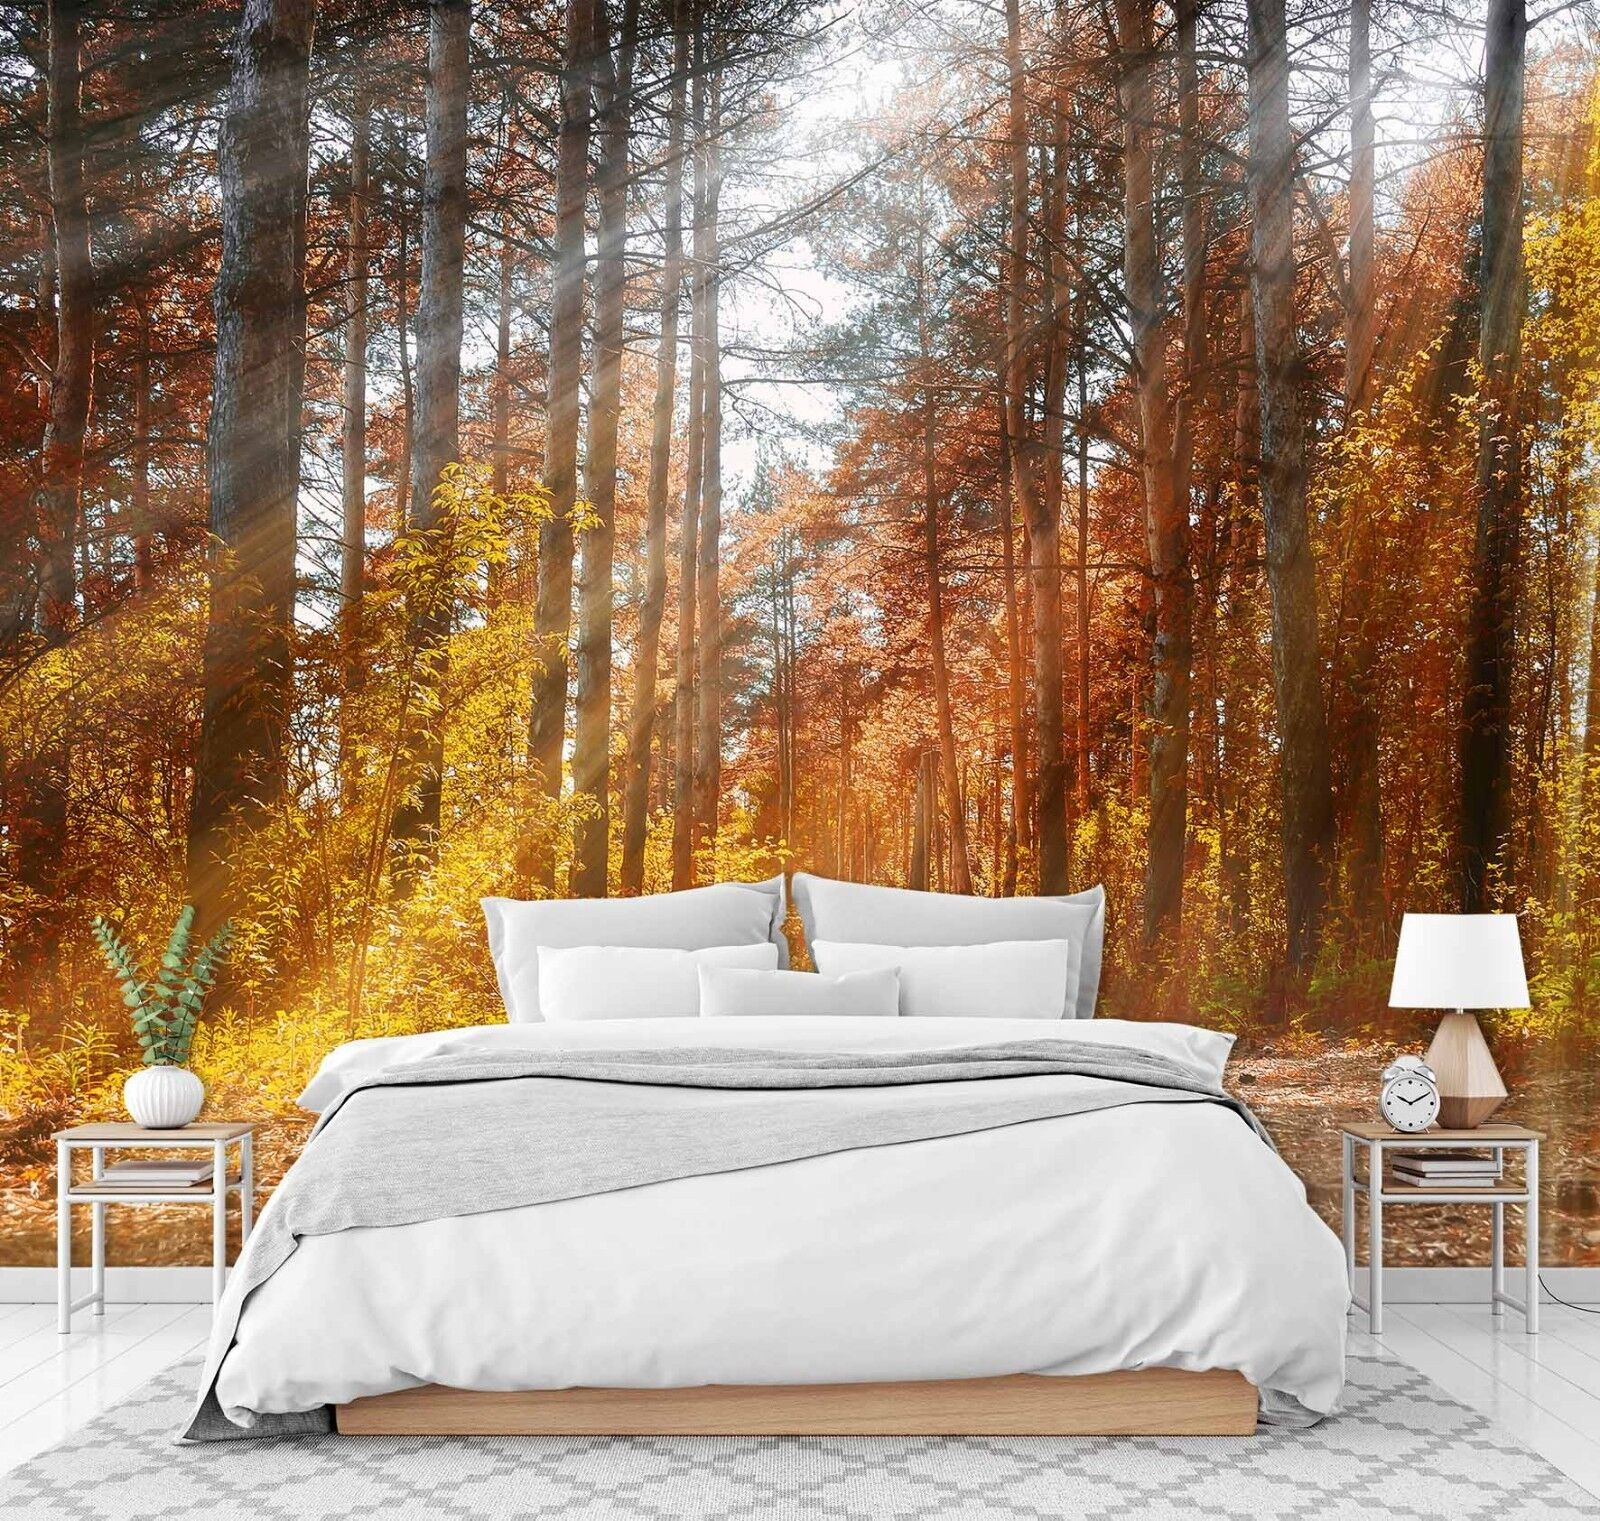 3D Sunshine Land Forest 56 Wall Paper Wall Print Print Print Decal Deco Indoor Wall Mural CA 6b3bb4